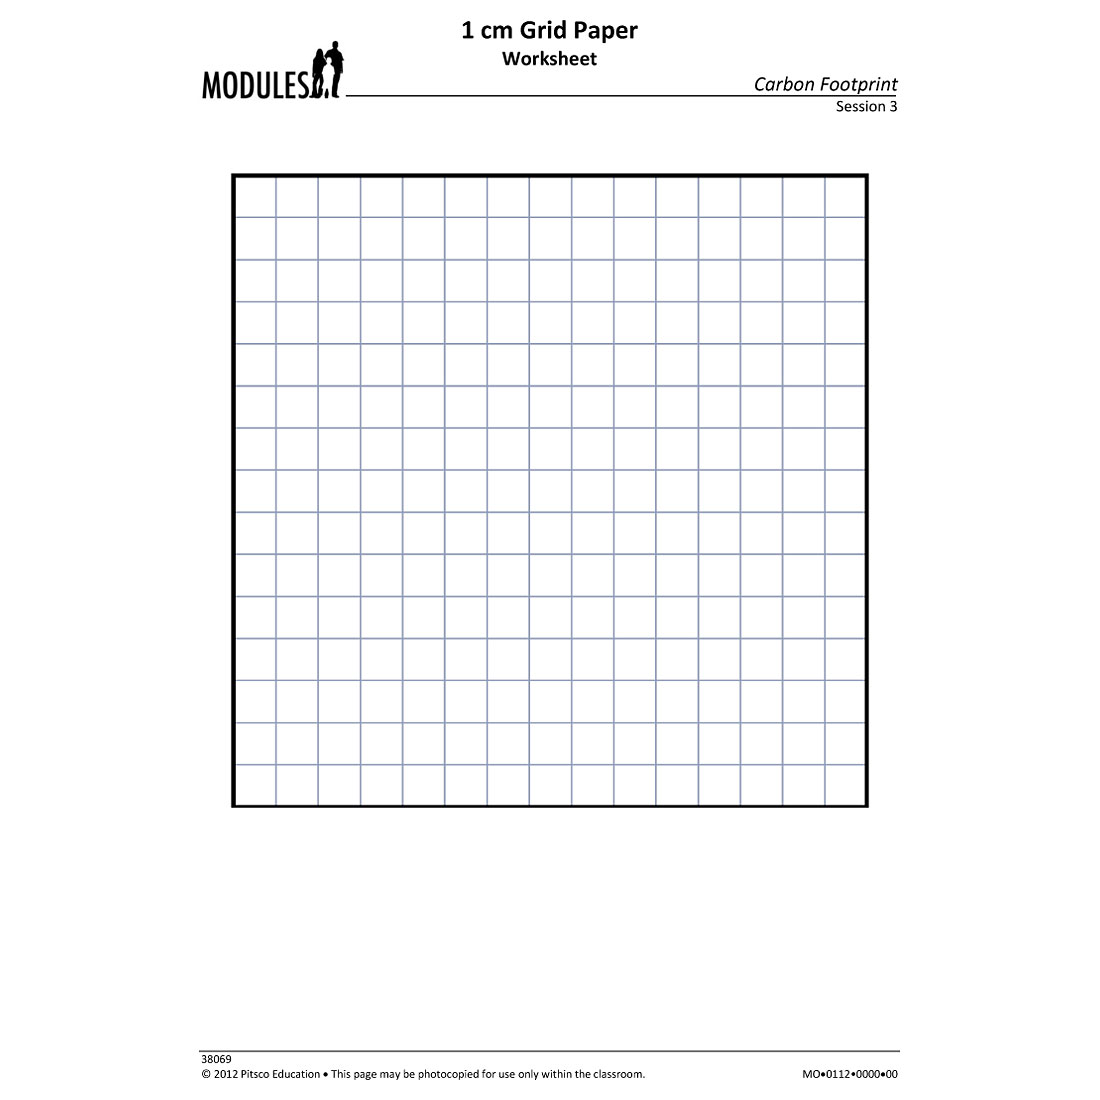 Worksheet Grid Worksheets Grass Fedjp Worksheet Study Site